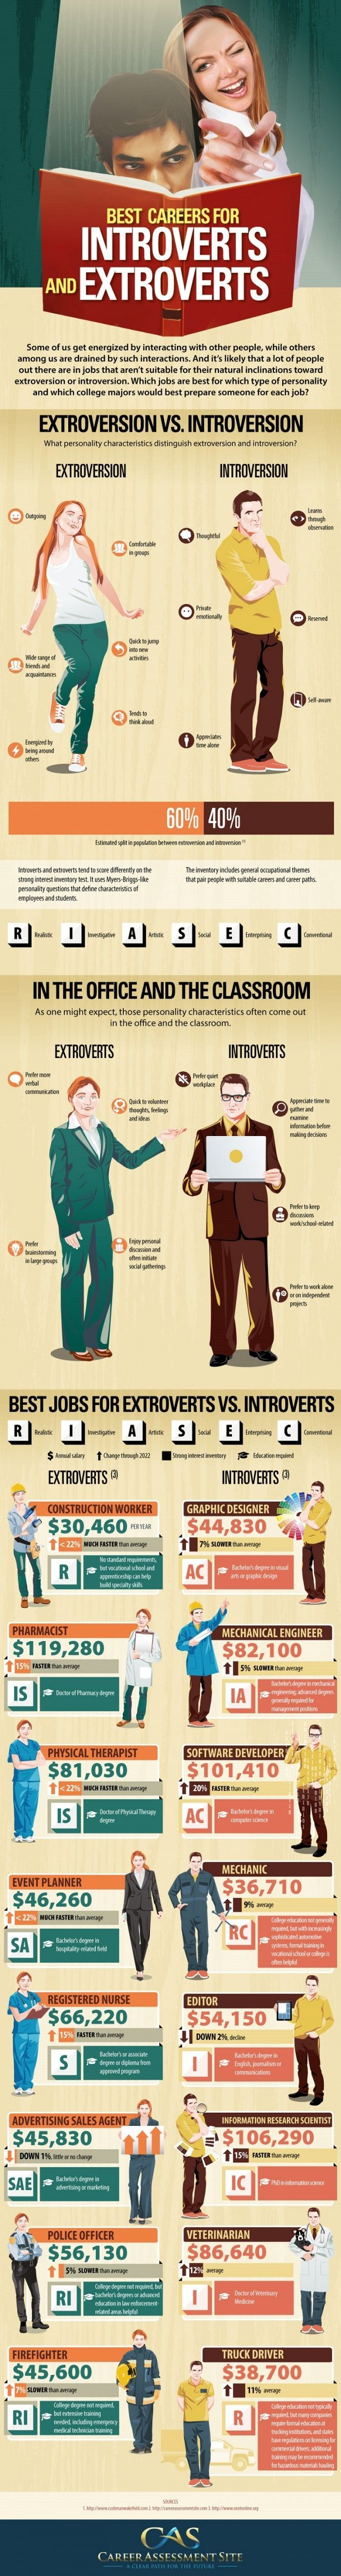 The Best Career Paths for Introverts and Extroverts